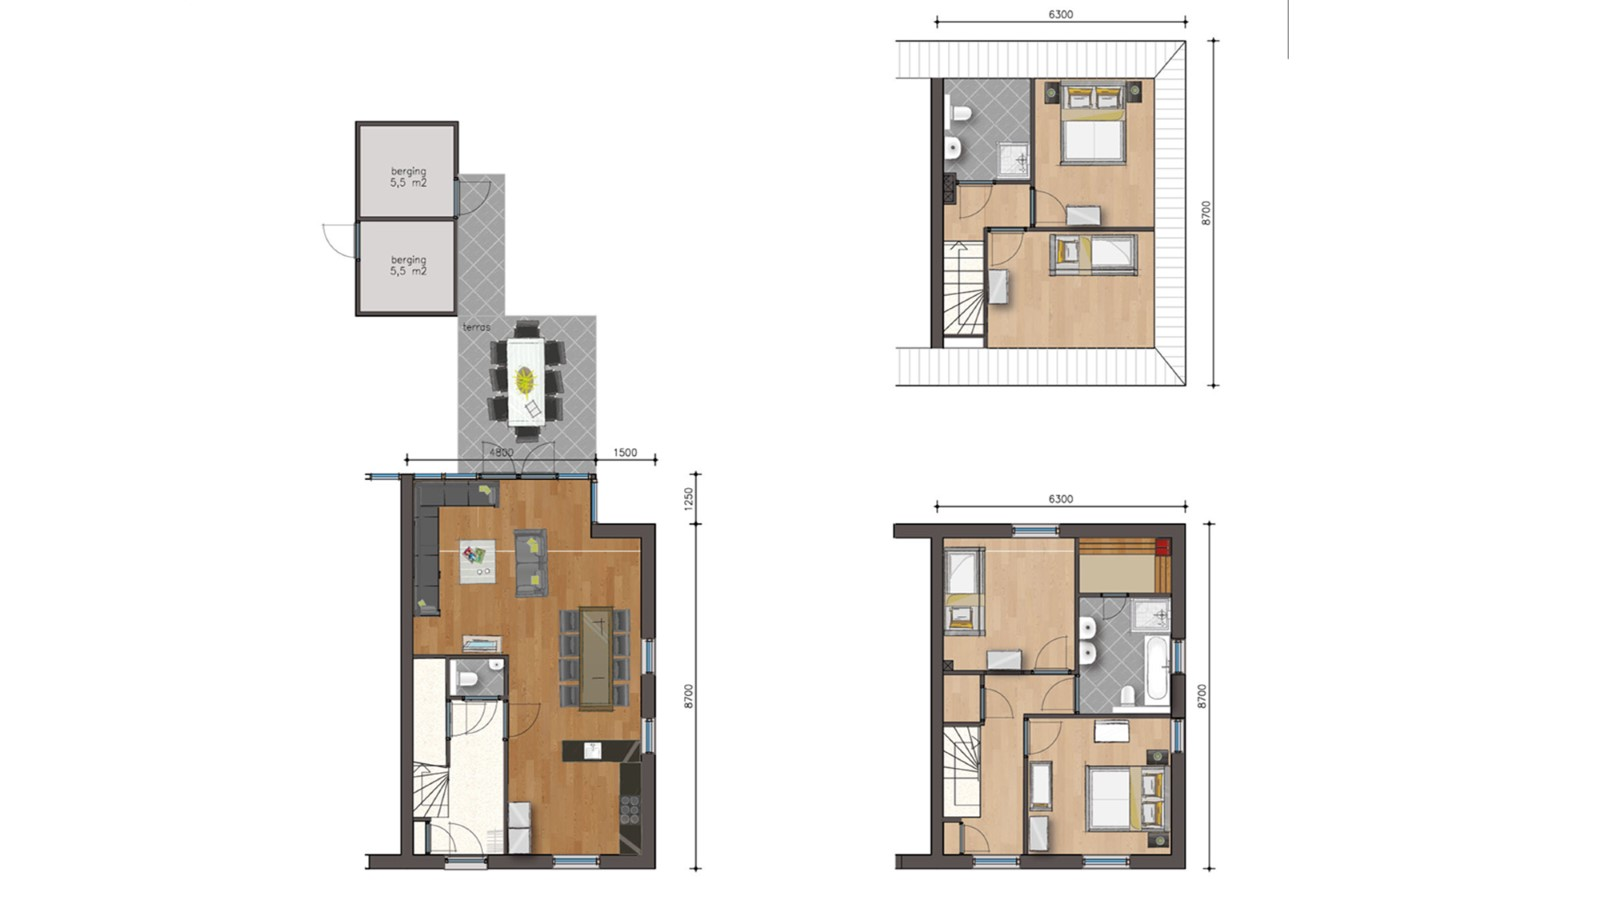 Herenhuis luxury Kids - 4 bedrooms